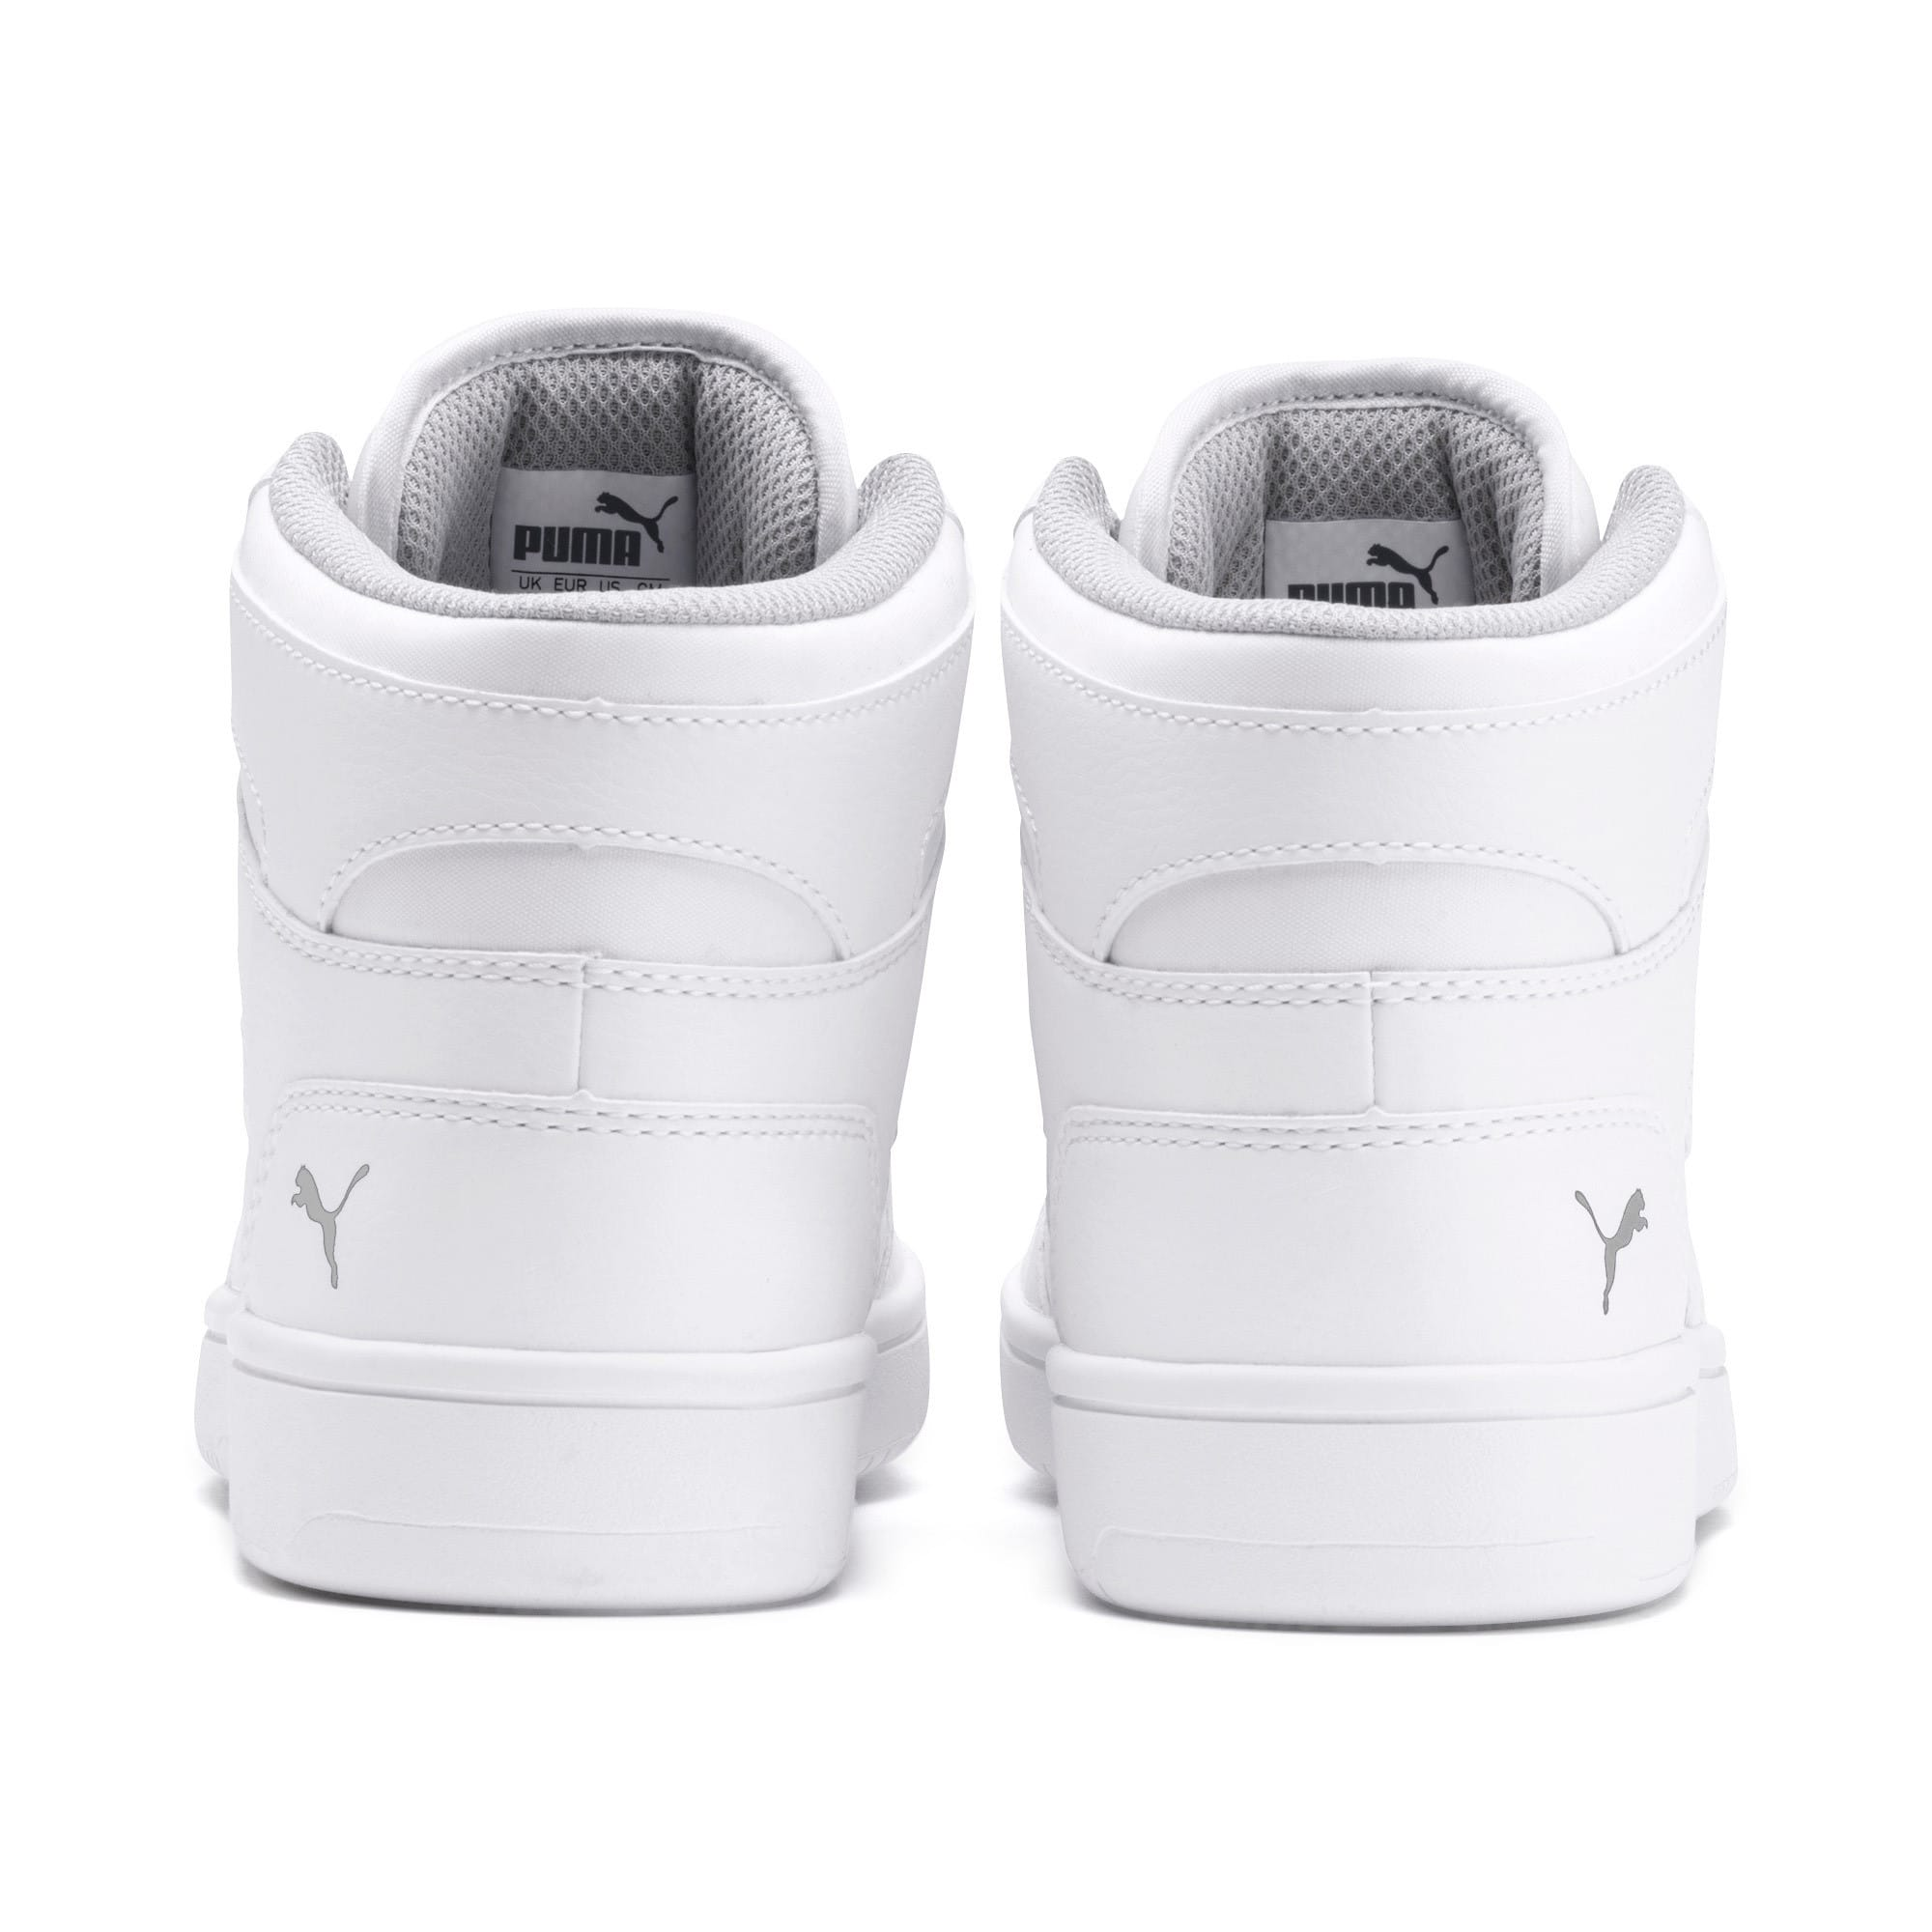 Thumbnail 3 of Rebound Lay Up SL Youth Sneaker, Puma White-Gray Violet, medium